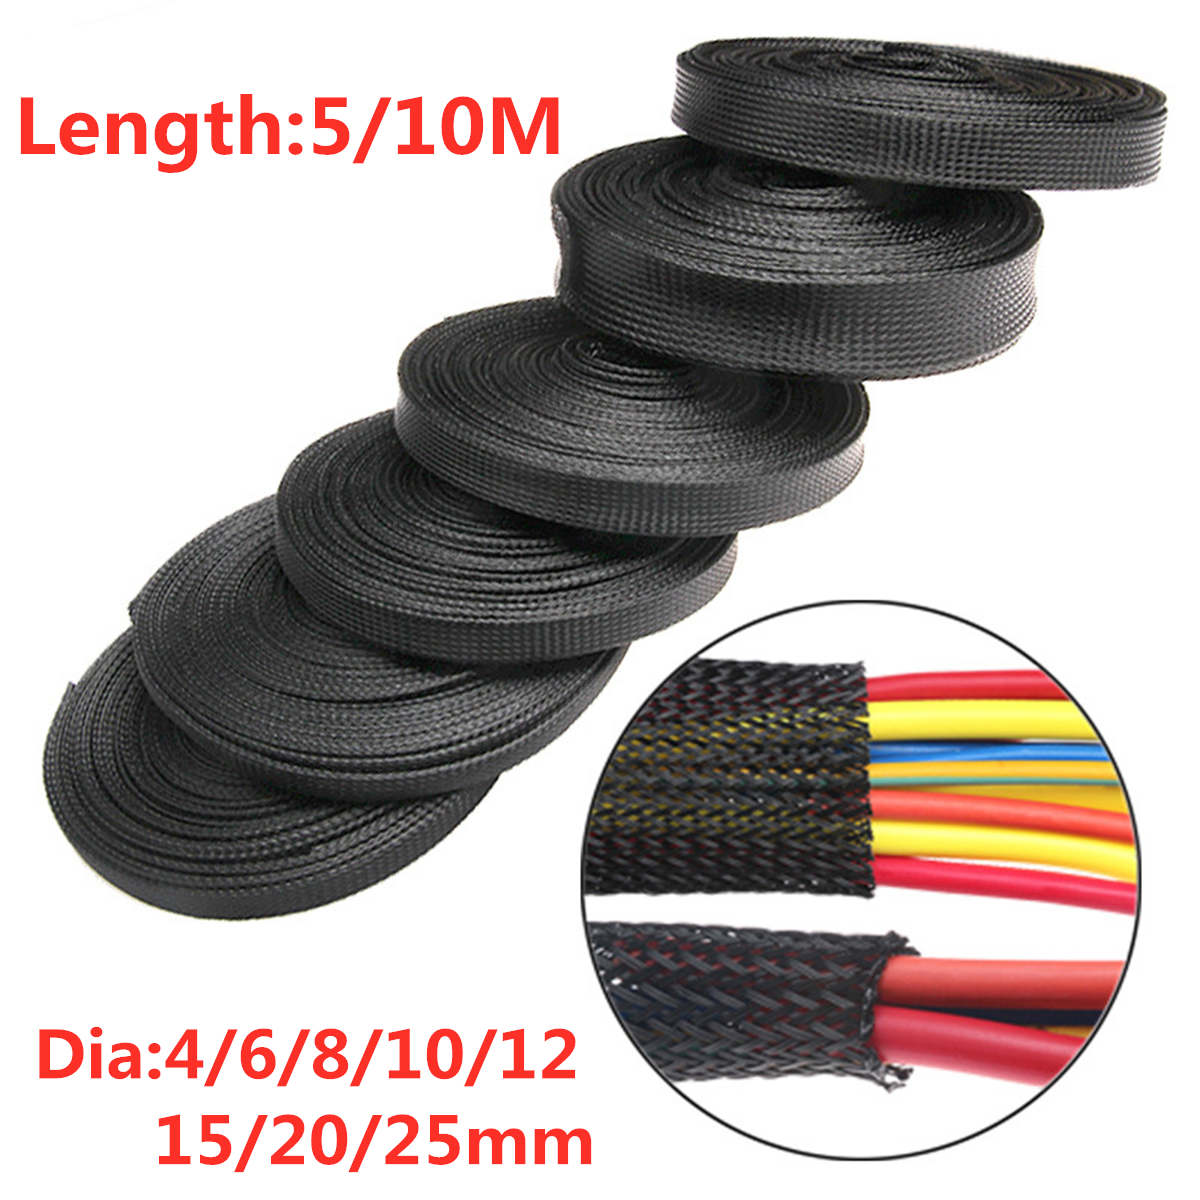 details about 5 10m 4 25mm braided sleeving braid cable wiring harness loom protection black Stereo Wiring Harness Color Codes